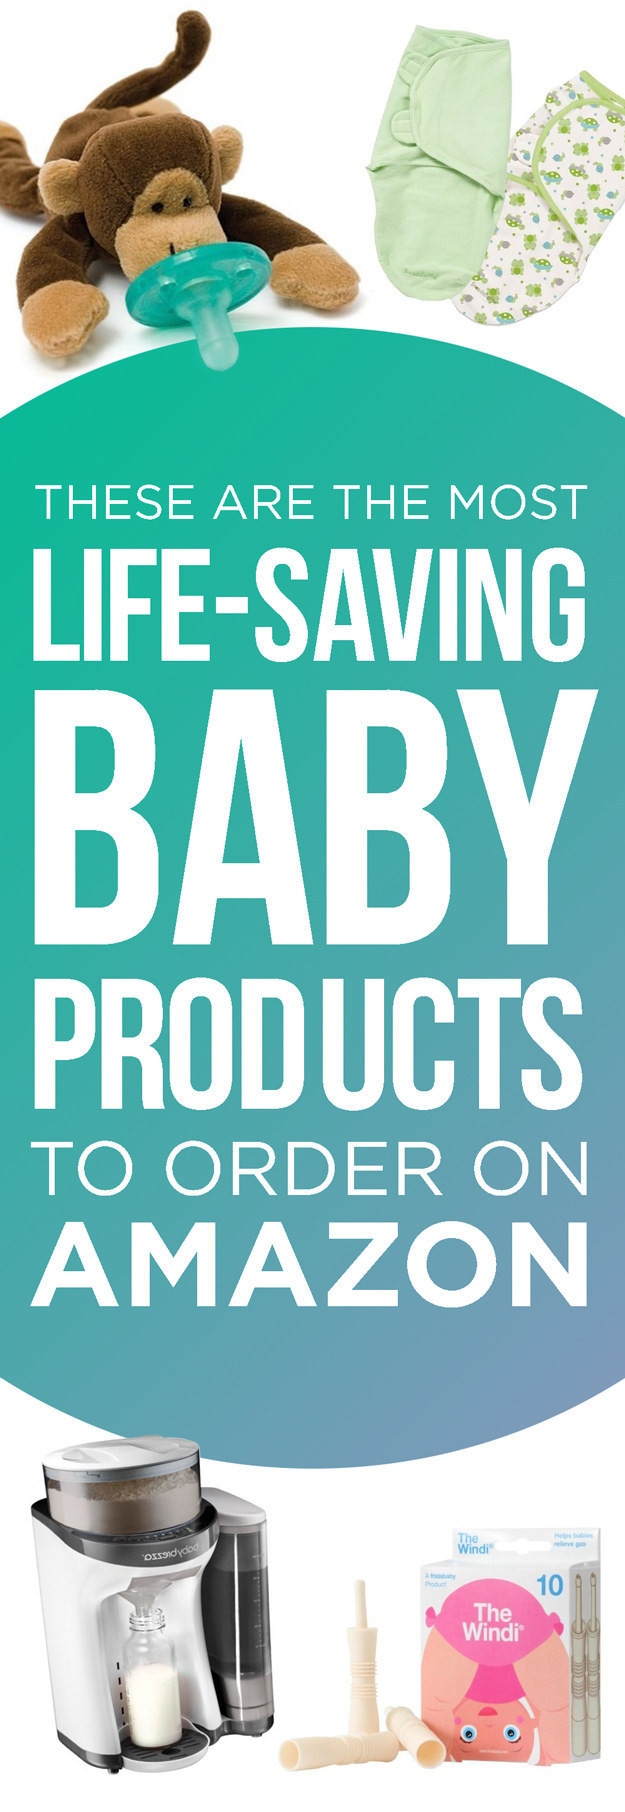 17 Of The Most Life-Saving Baby Products To Order On Amazon